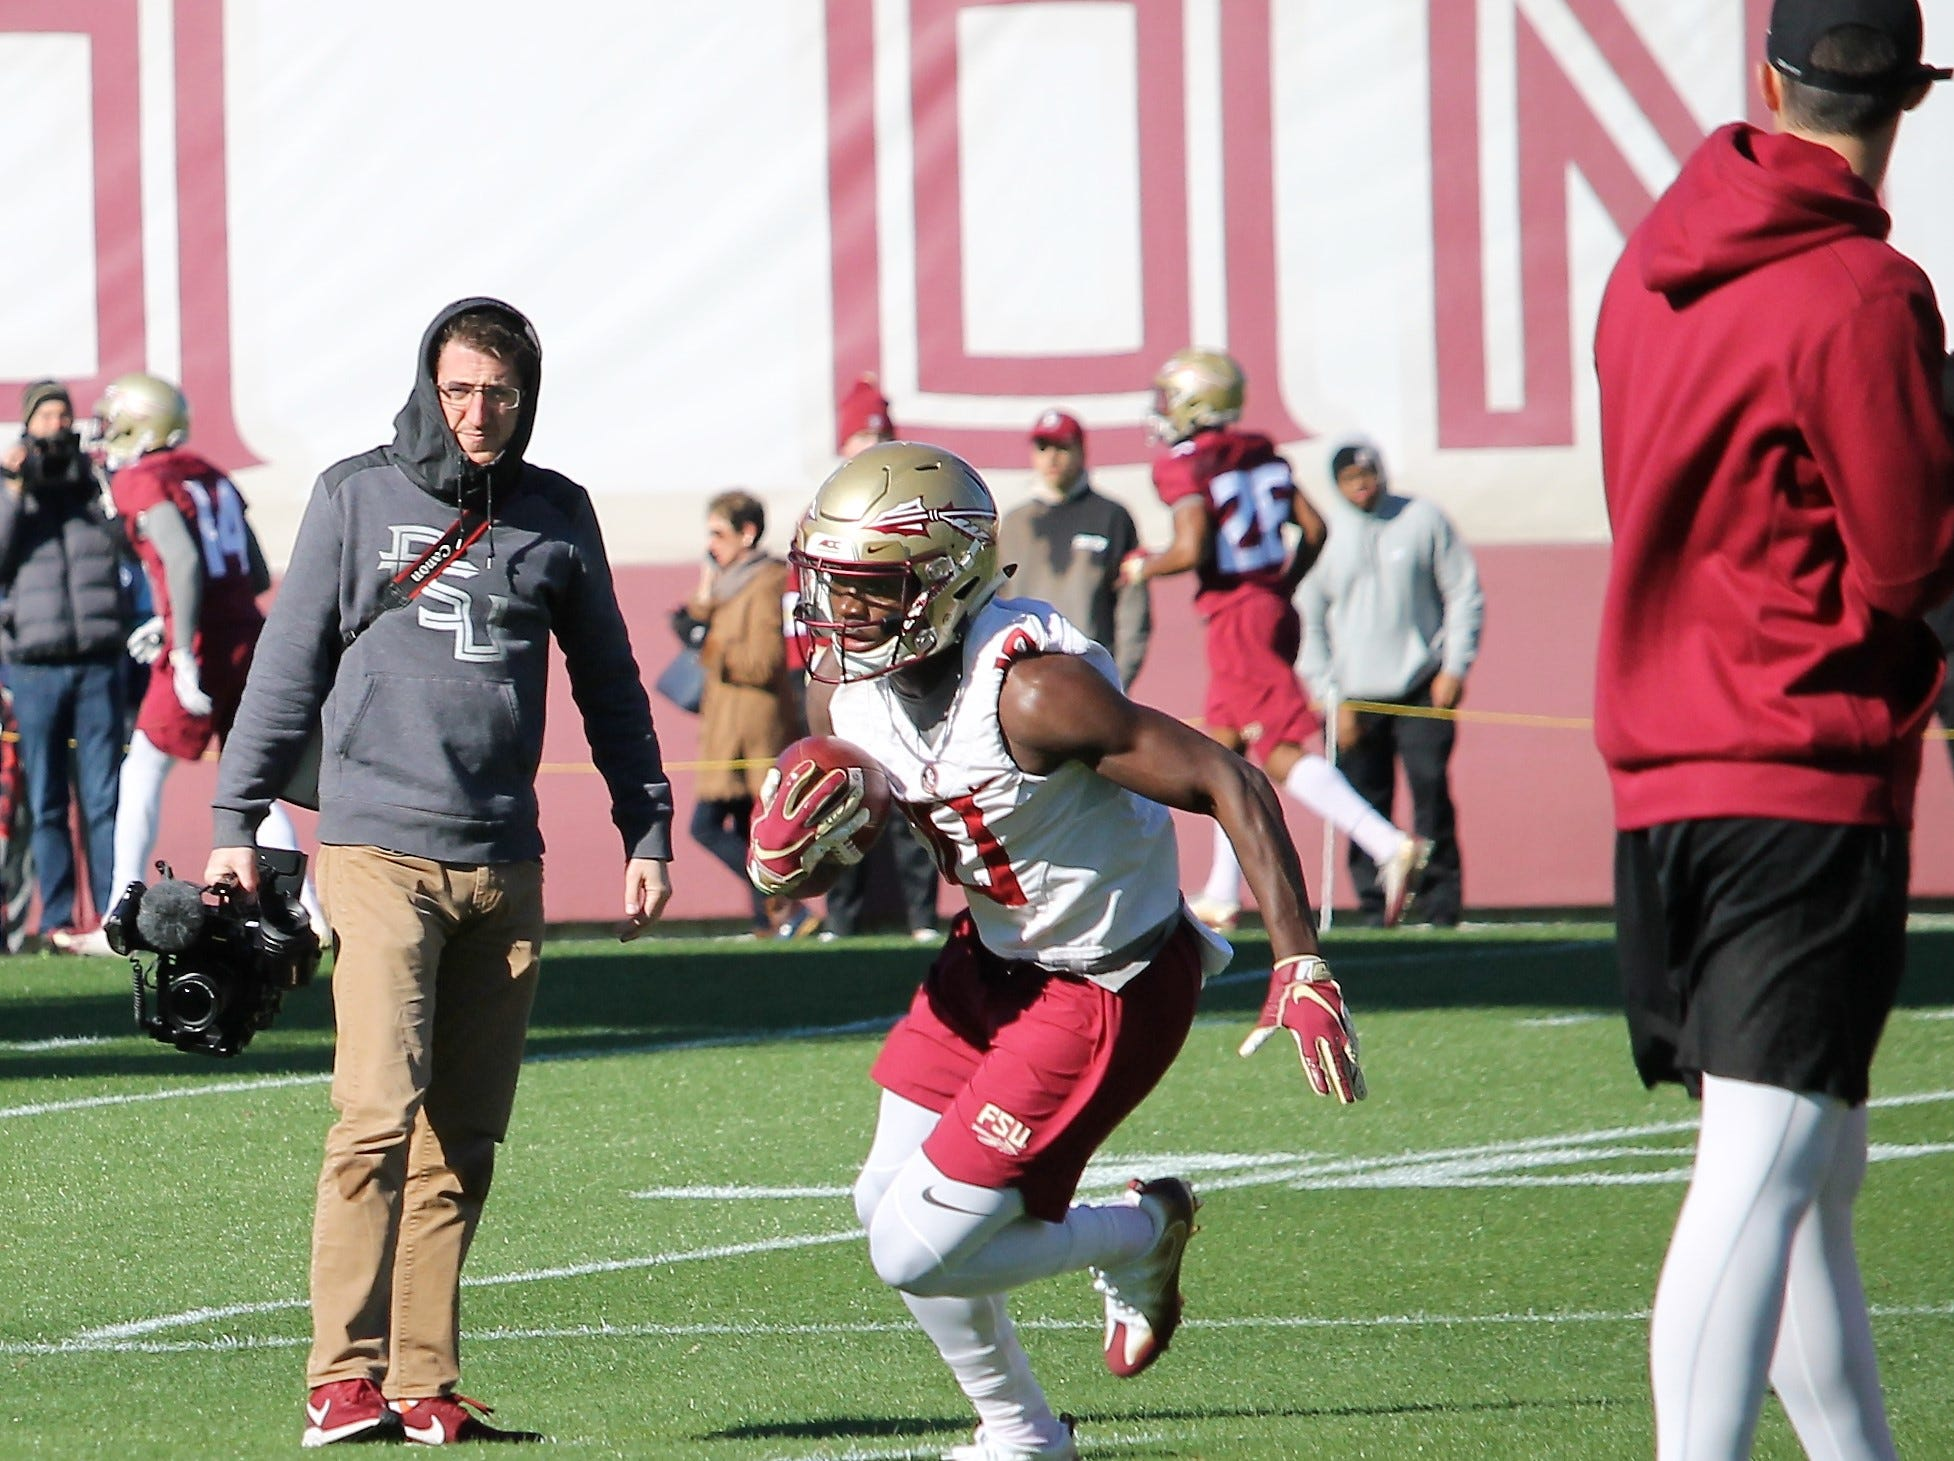 Running back Anthony Grant at FSU football practice on March 6, 2019.